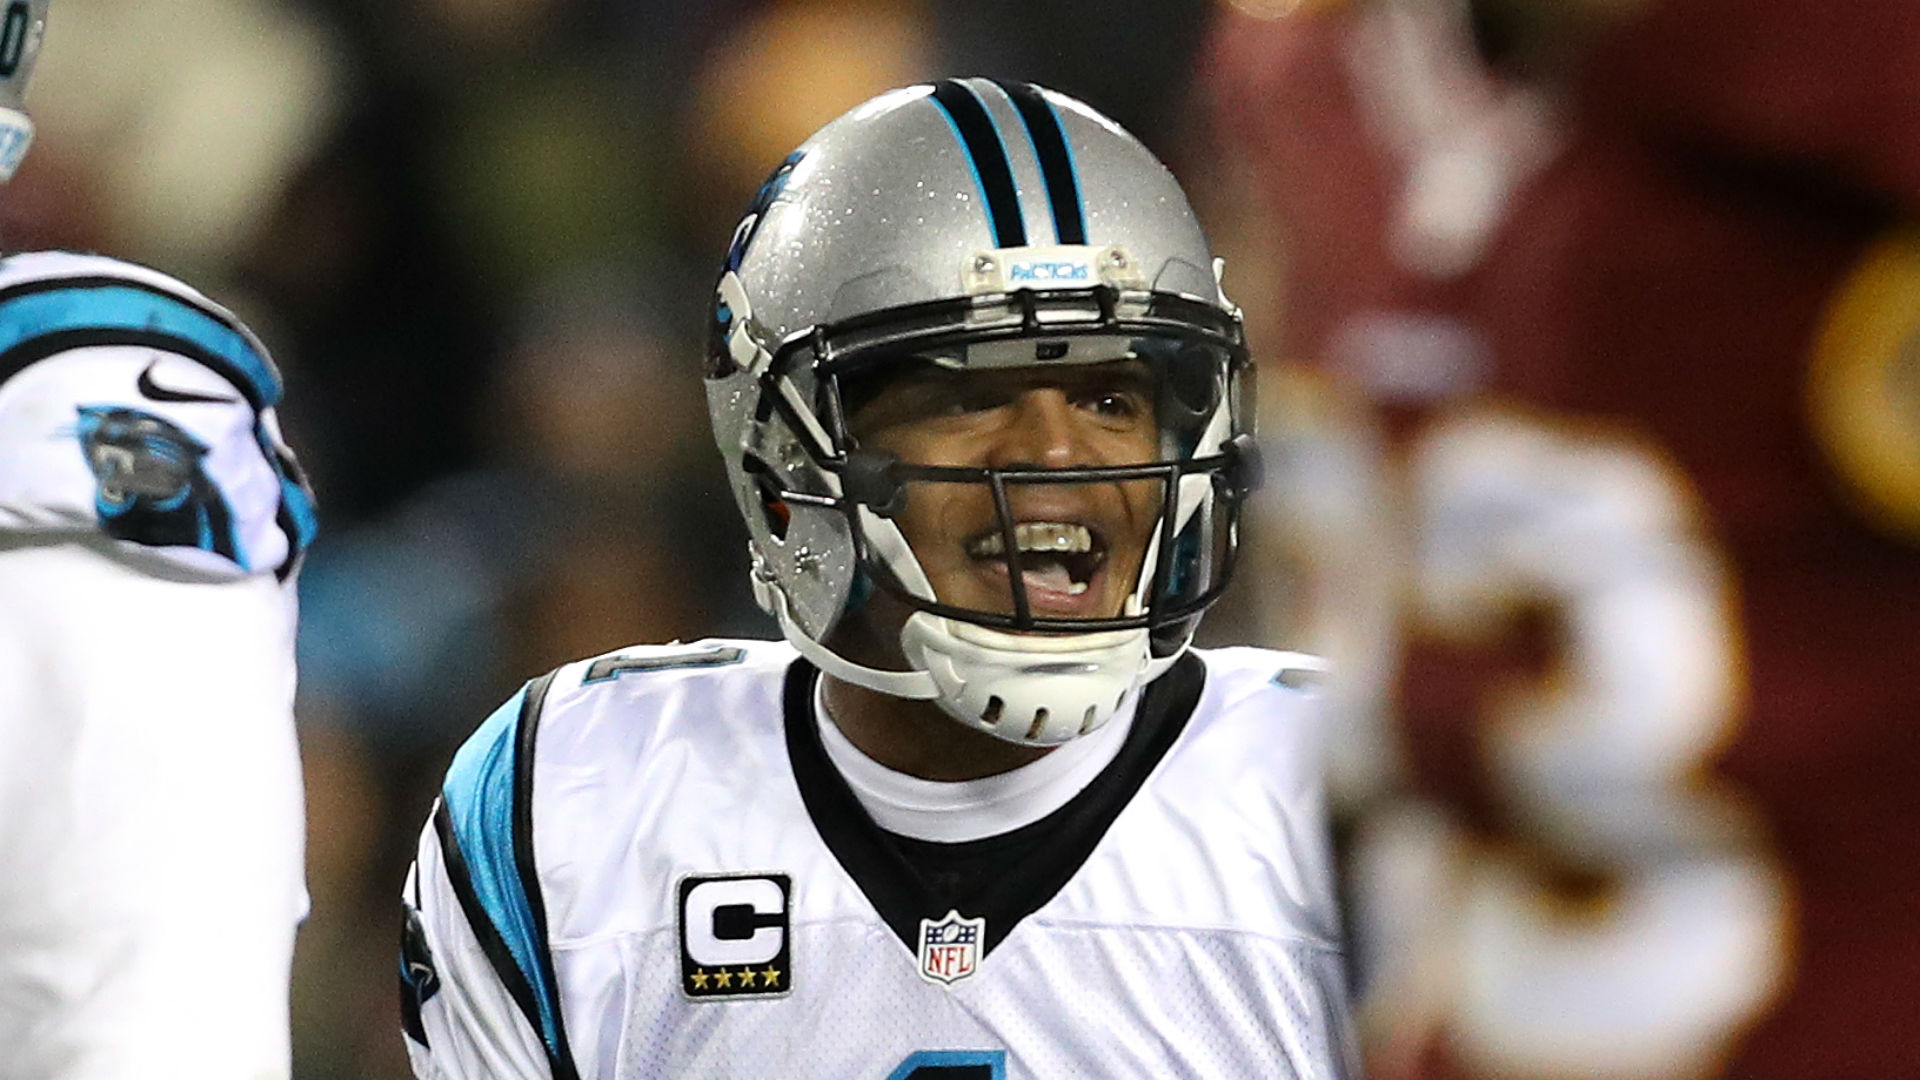 Panthers QB Cam Newton wants to dominate and trust teammates more